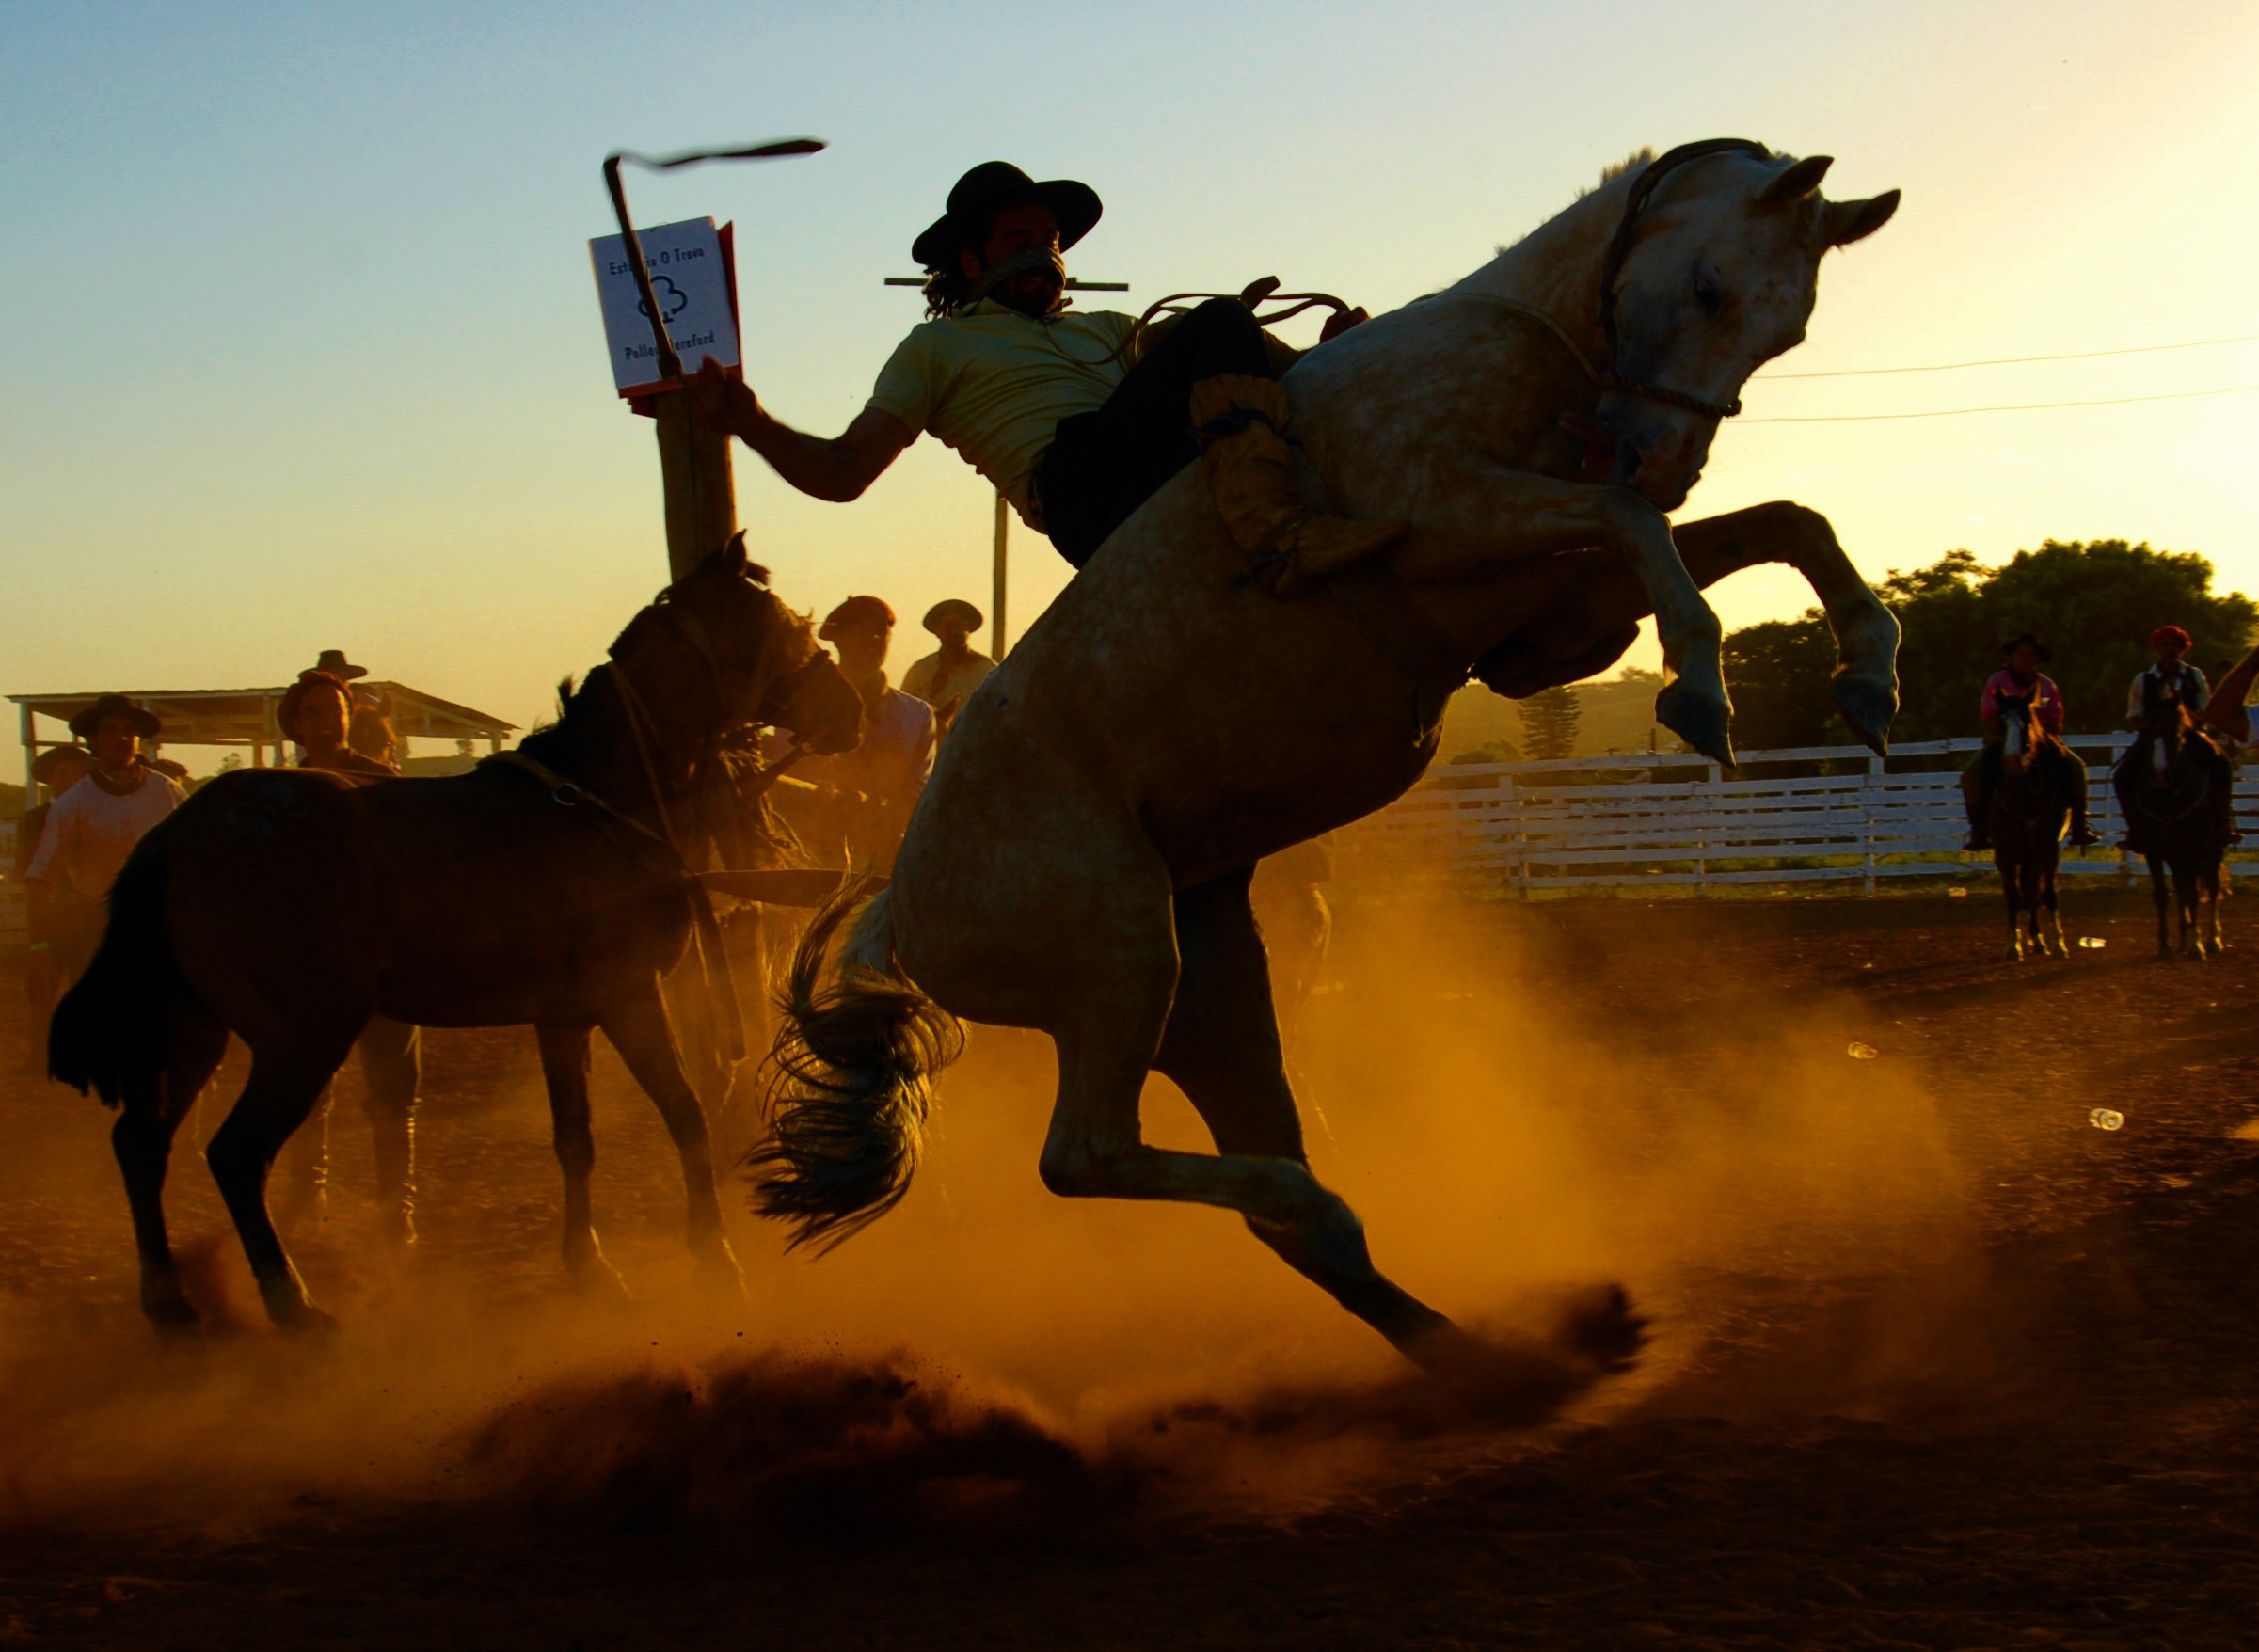 Horse Riding Wallpaper Hd 16 Rodeo Hd Wallpapers Background Images Wallpaper Abyss